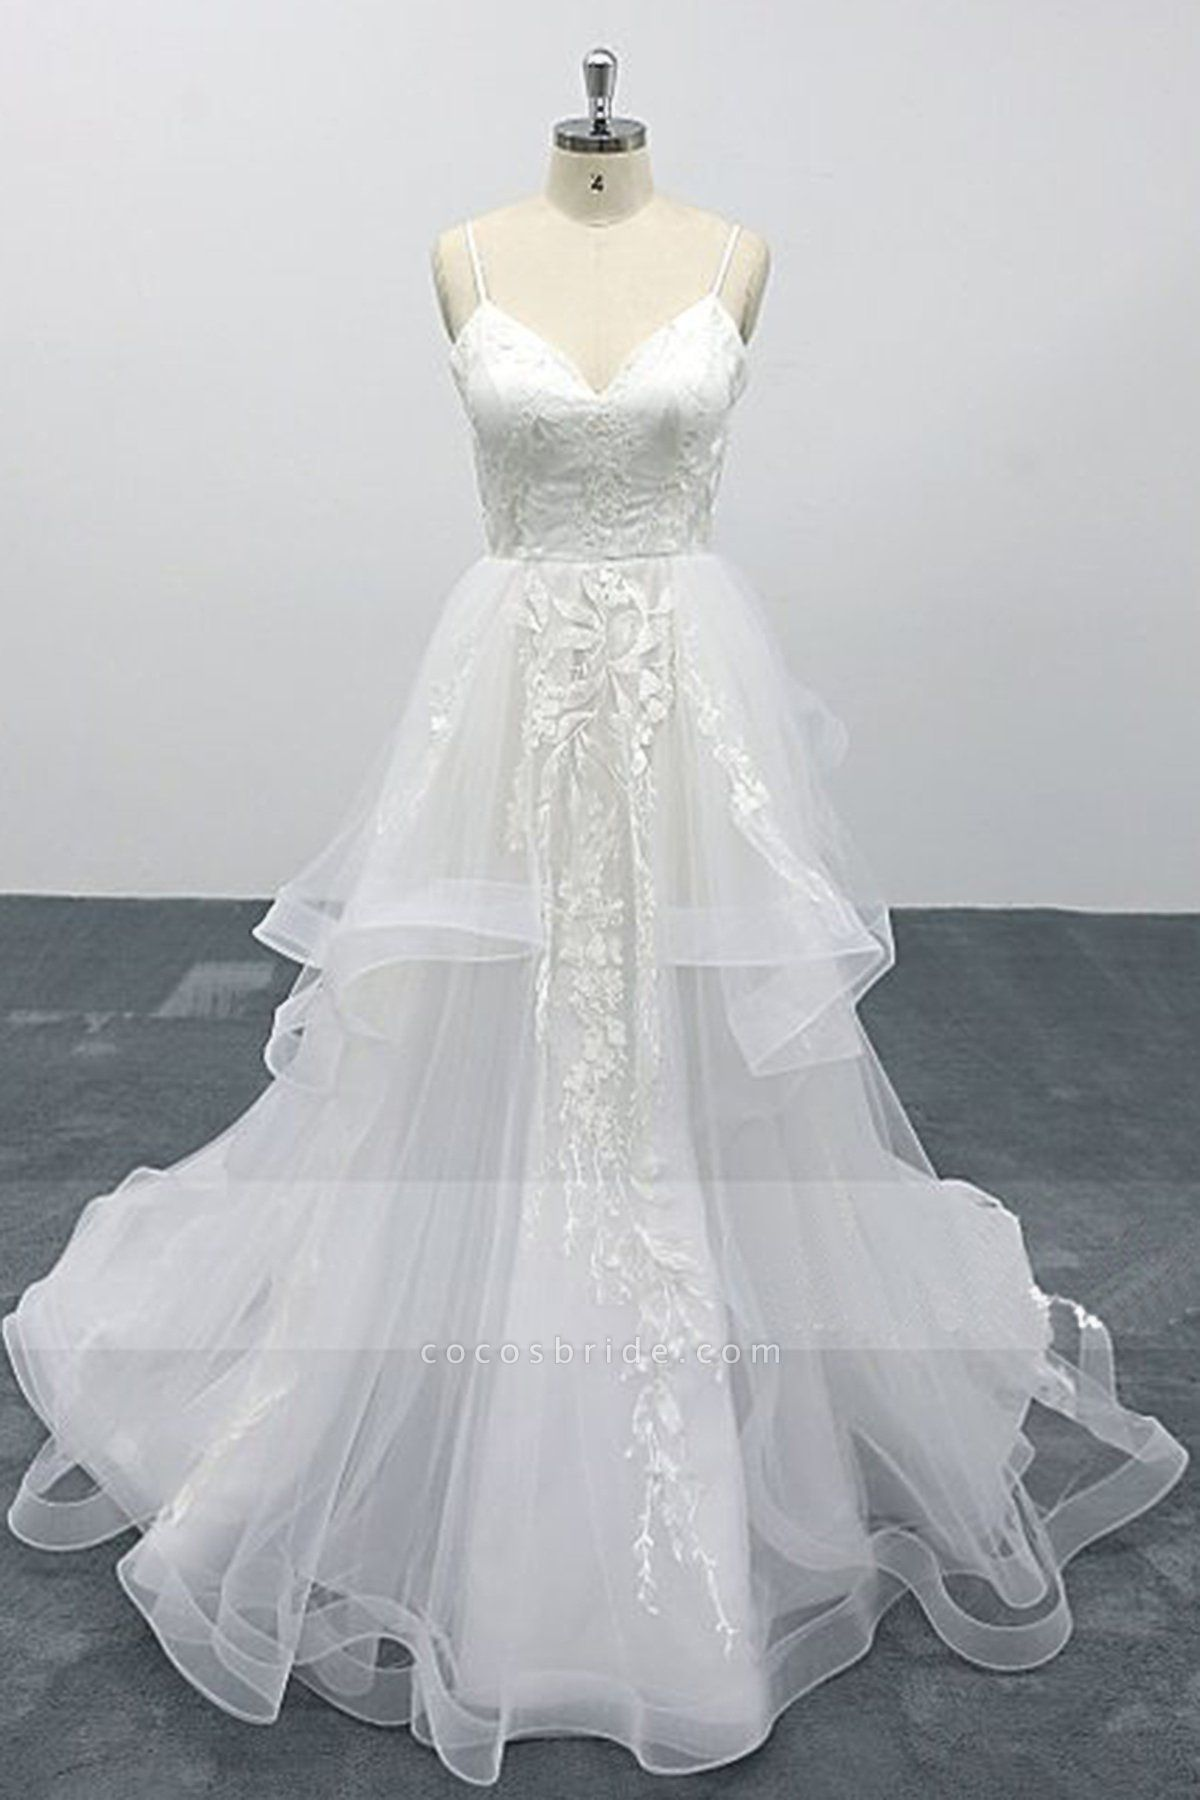 White Lace Layered A Line Thin Straps Fairytale Wedding Dress